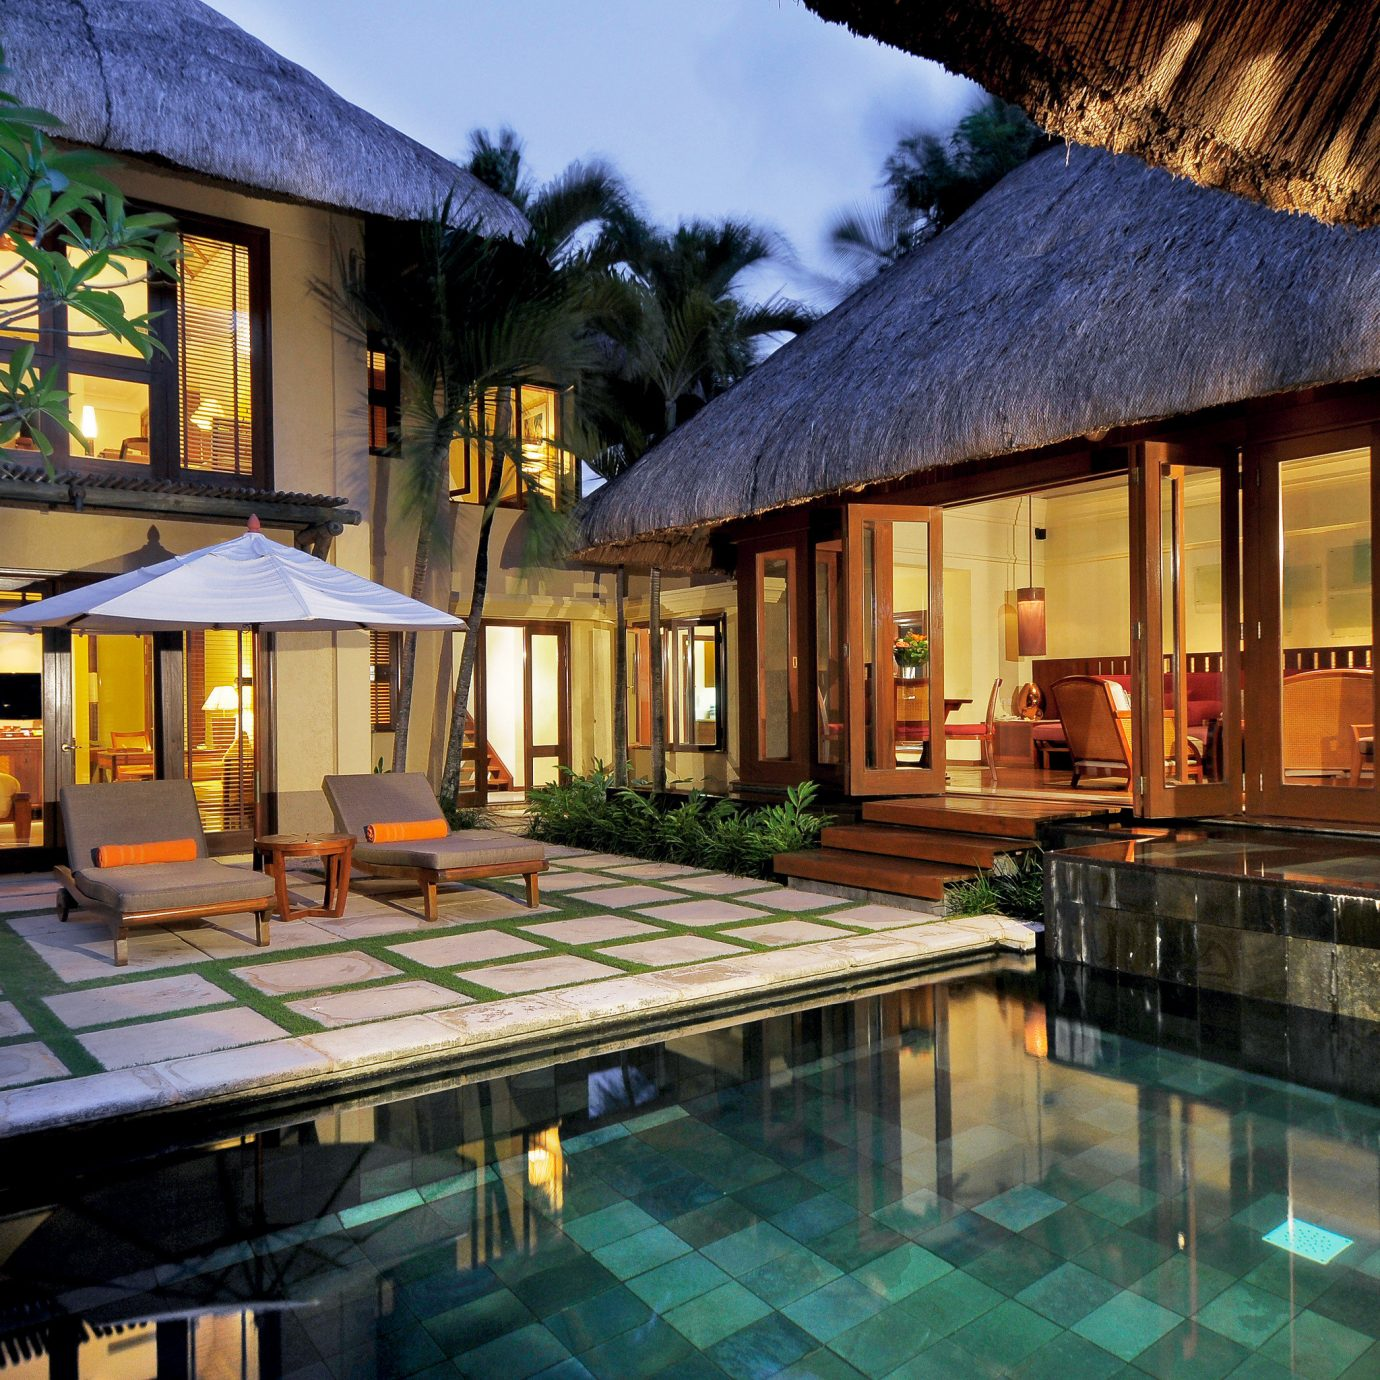 Family Pool Romantic Tropical Villa building property Resort house swimming pool home cottage mansion restaurant farmhouse